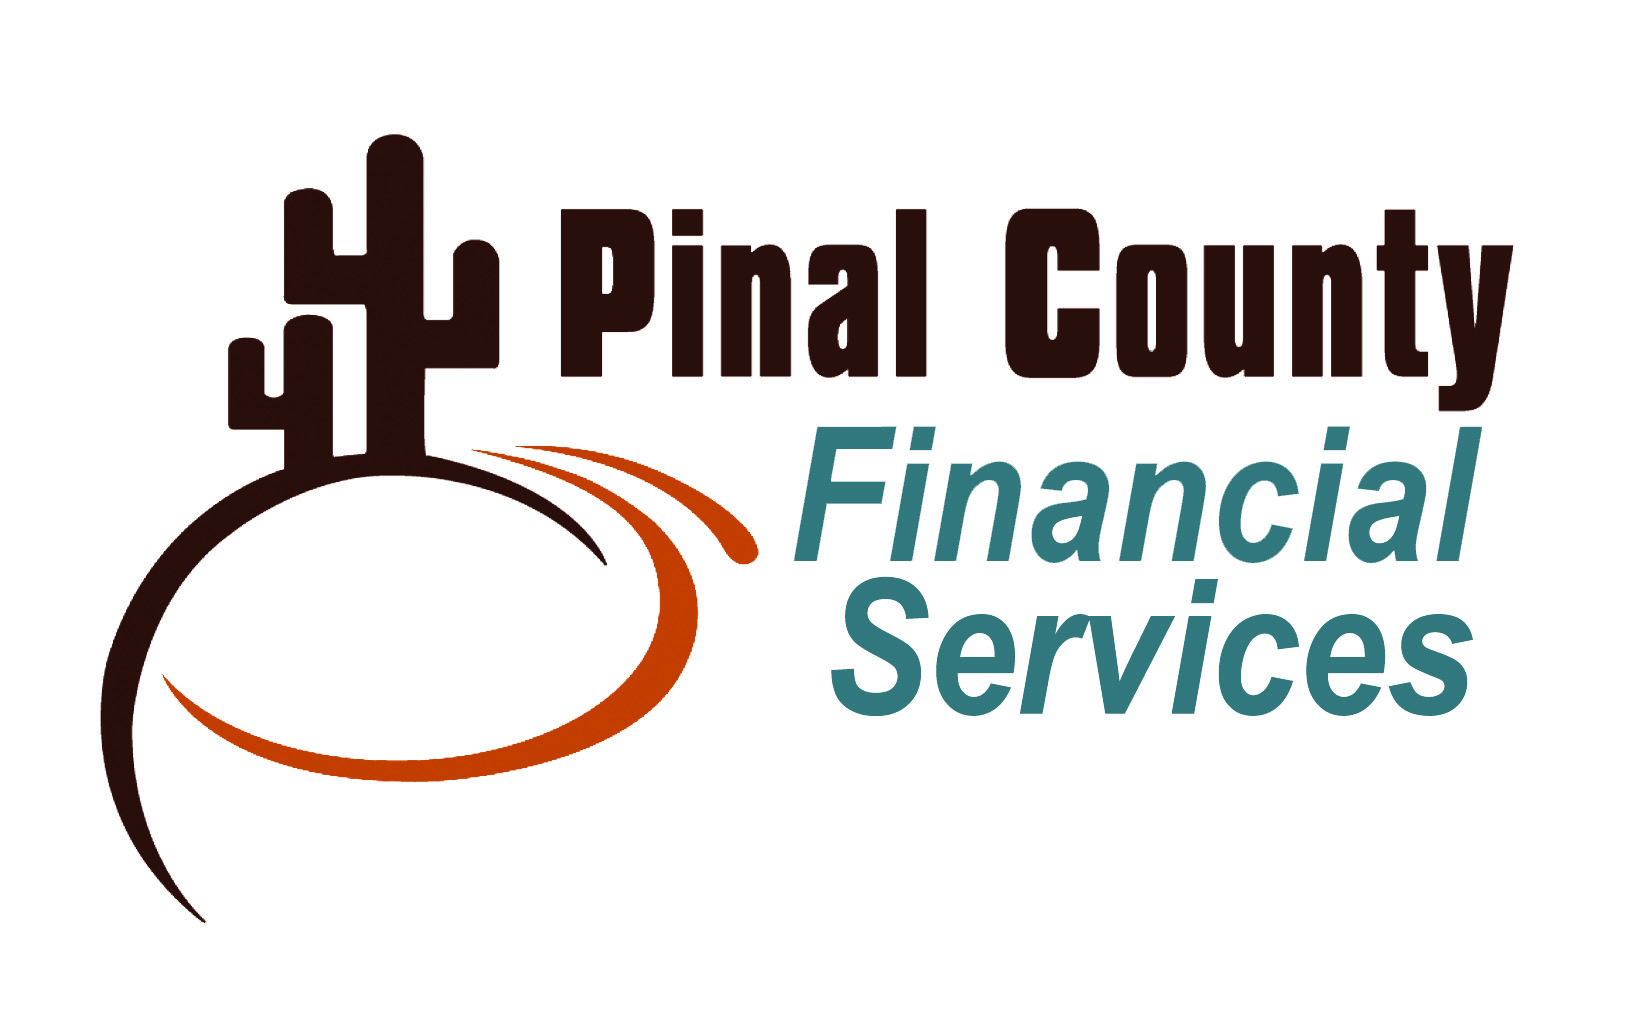 Pinal County Financial Services